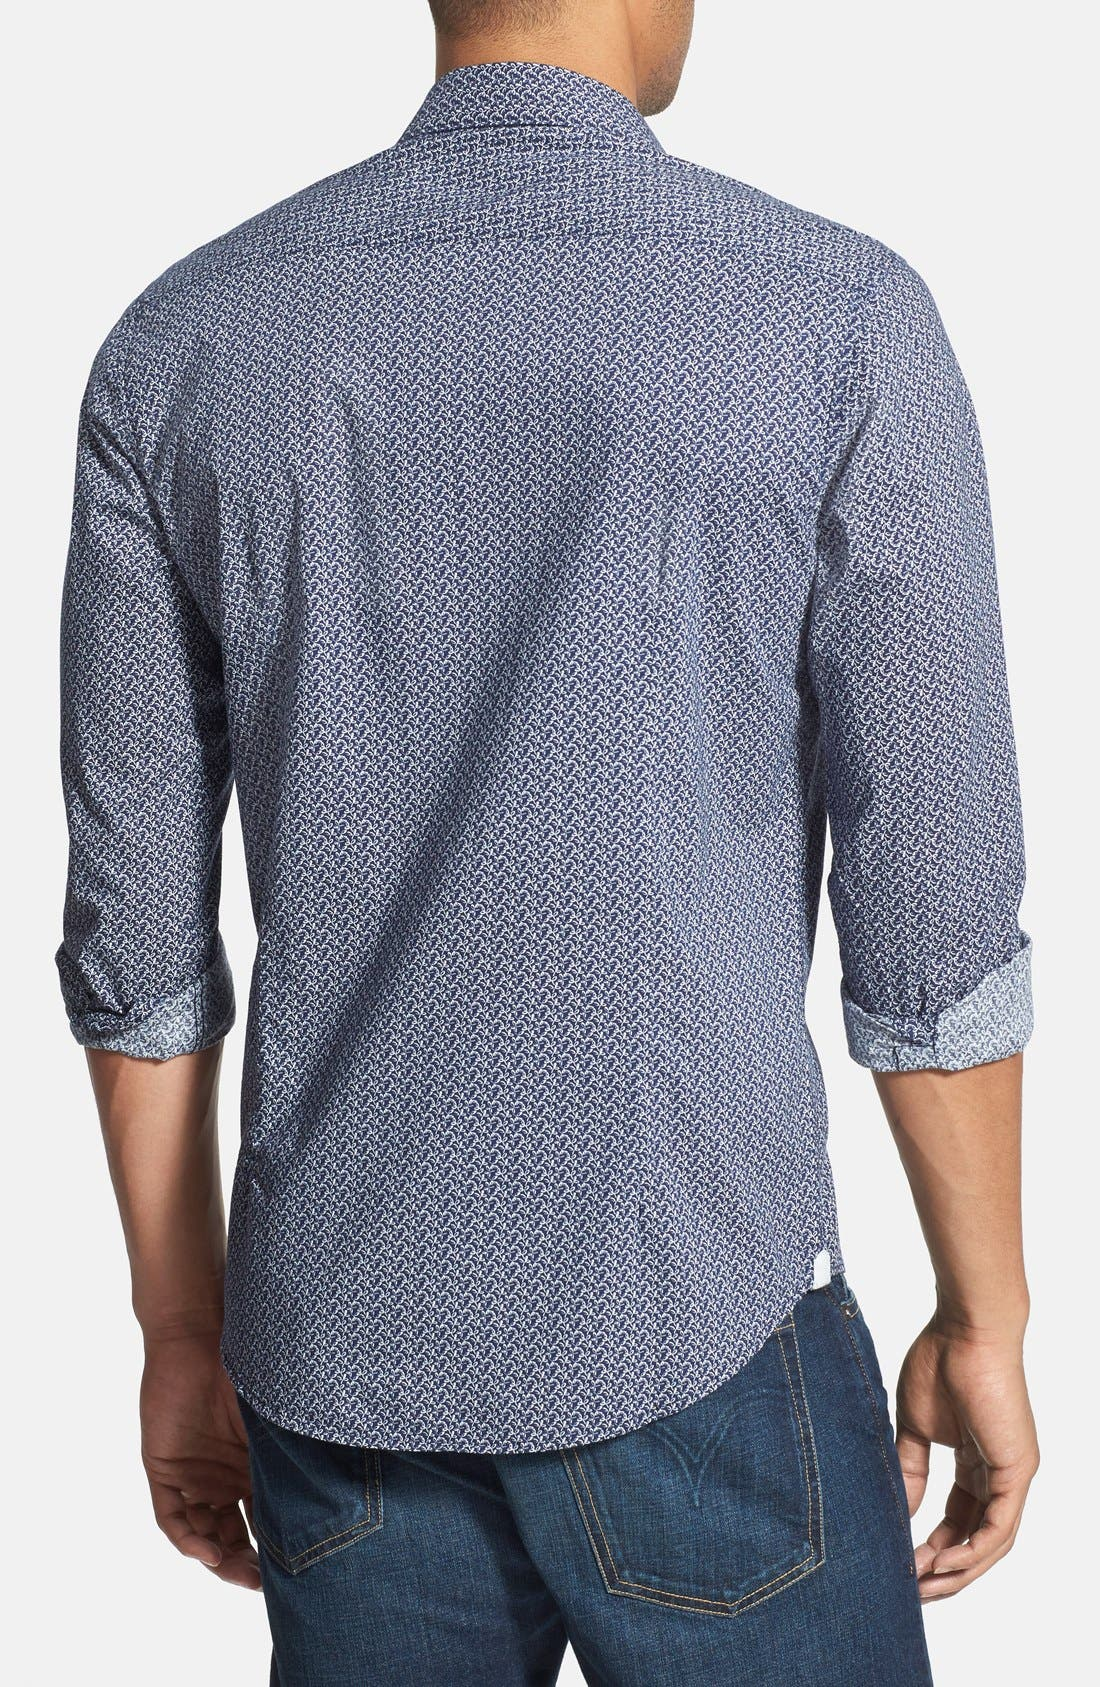 'Blueberry Hill' Trim Fit Print Woven Shirt,                             Alternate thumbnail 2, color,                             Navy